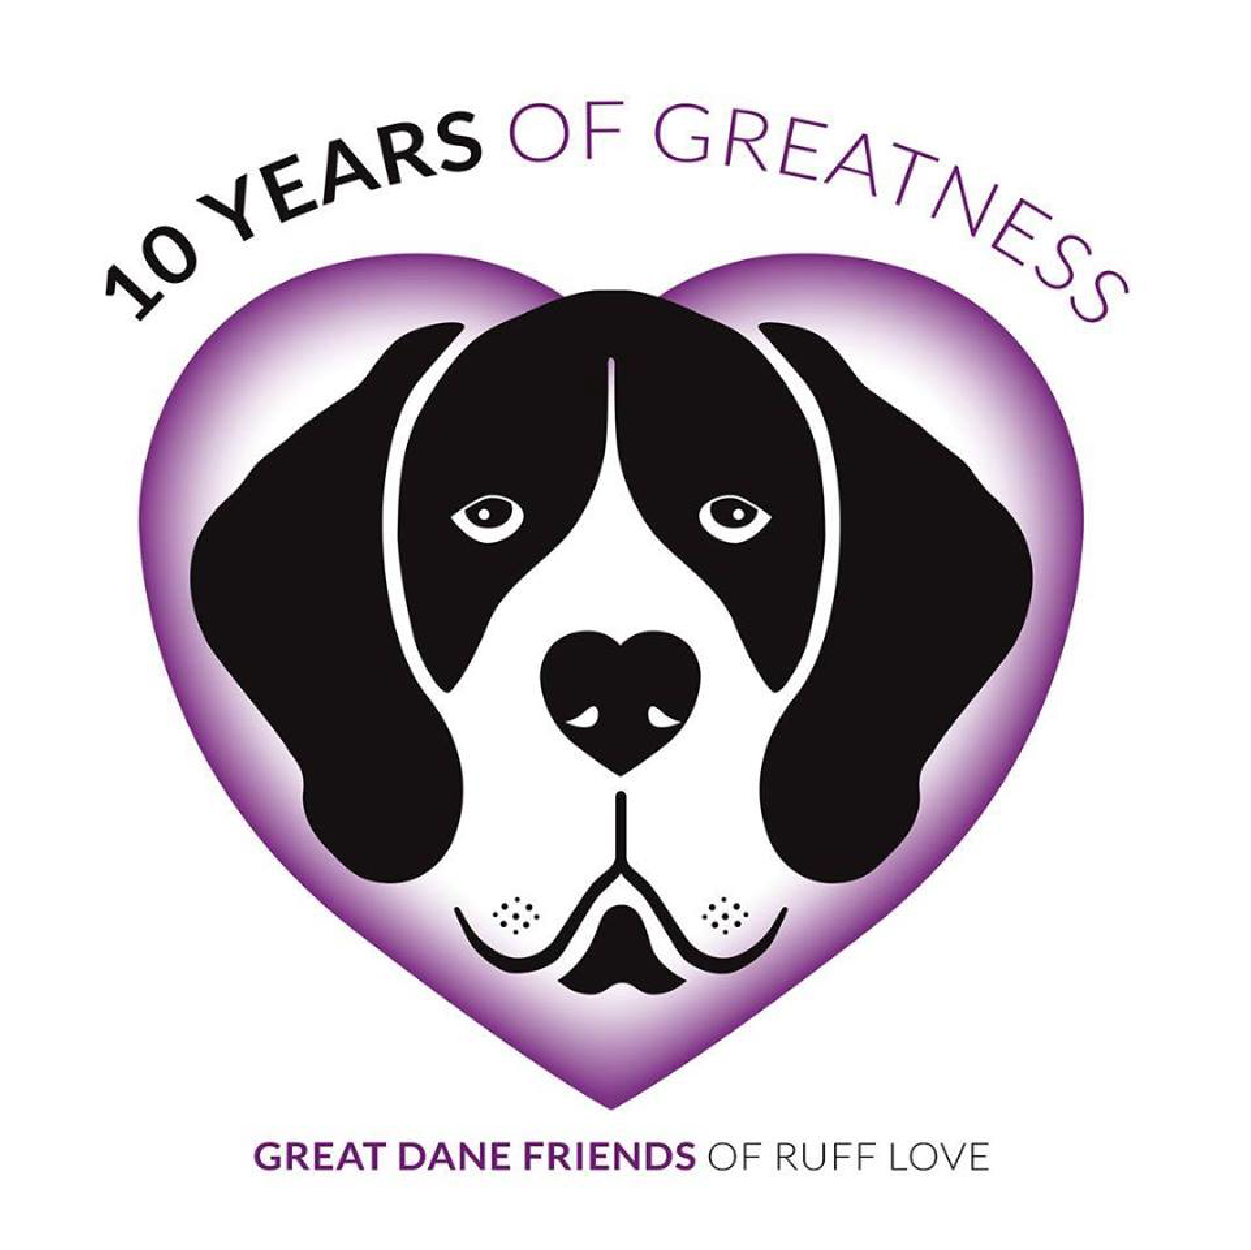 Great Dane Friends of Ruff Love is a group of dedicated volunteers that rescue Great Danes and other breed dogs when we can. Great Dane Friends is dedicated to saving Danes and other mixedbreeds even if they have special needs or health problems. -